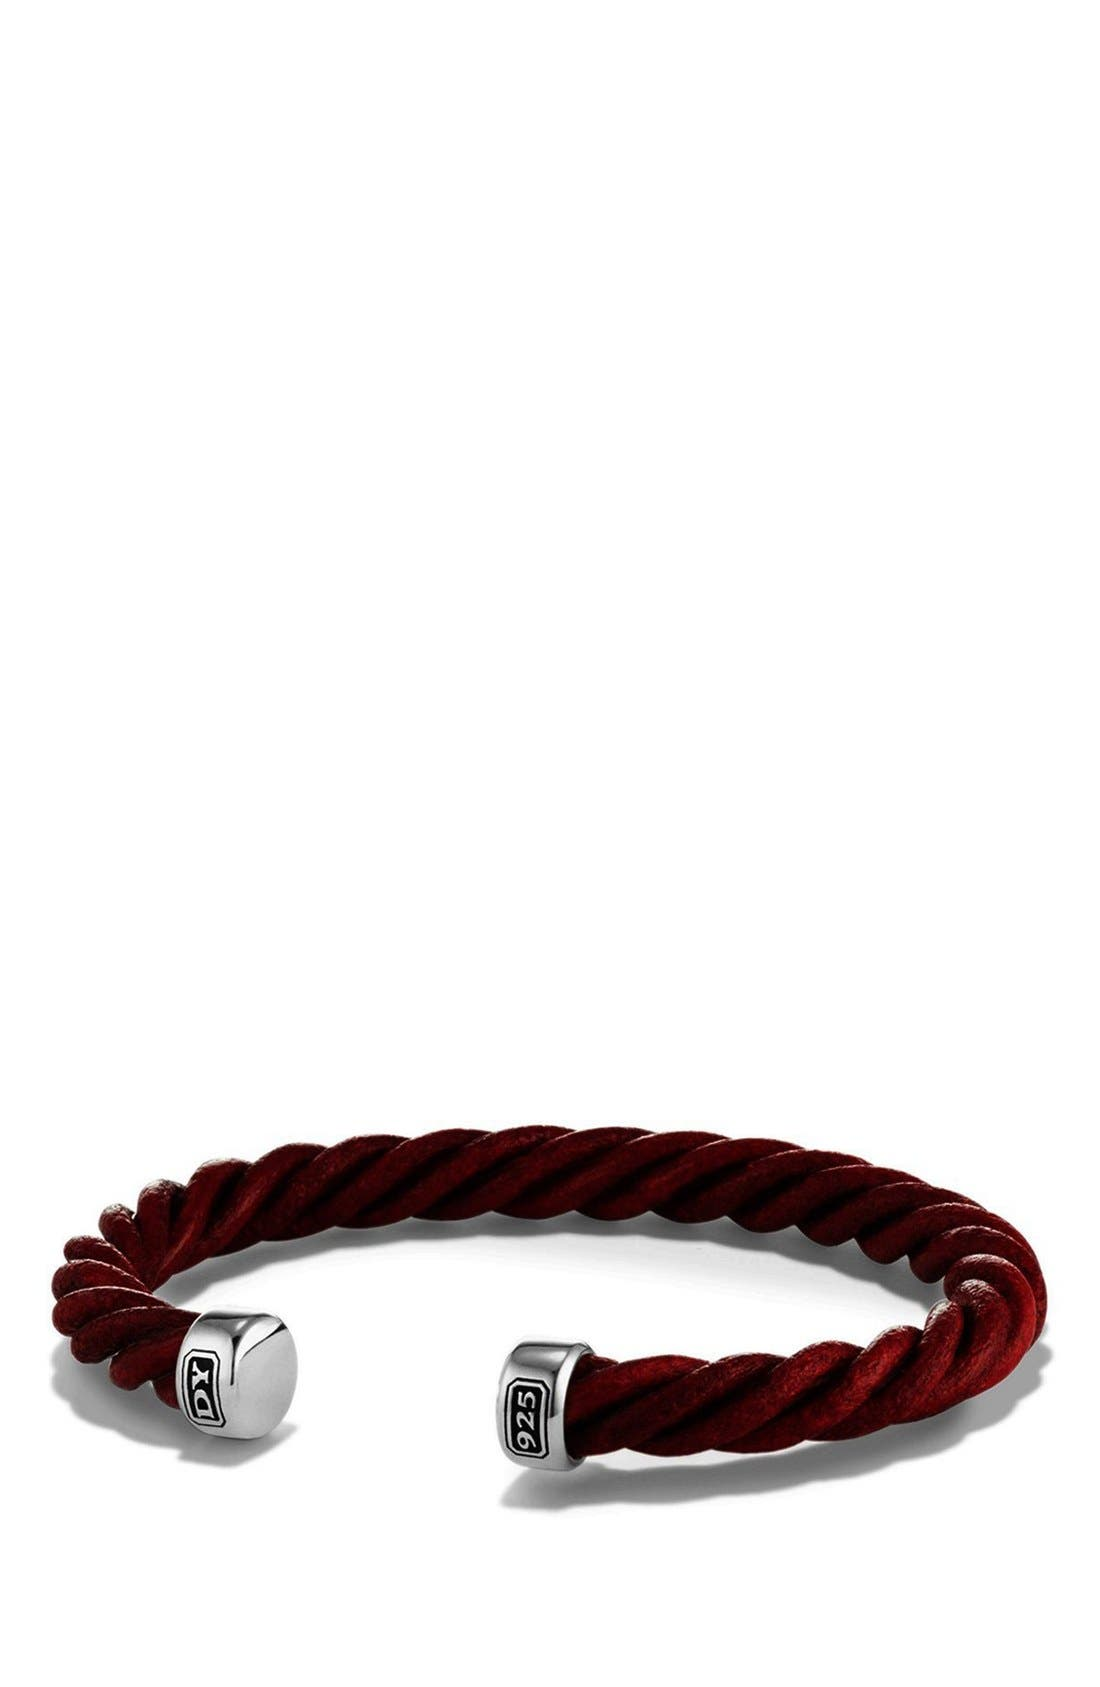 Leather Cuff Bracelet,                         Main,                         color, Silver/ Red Leather